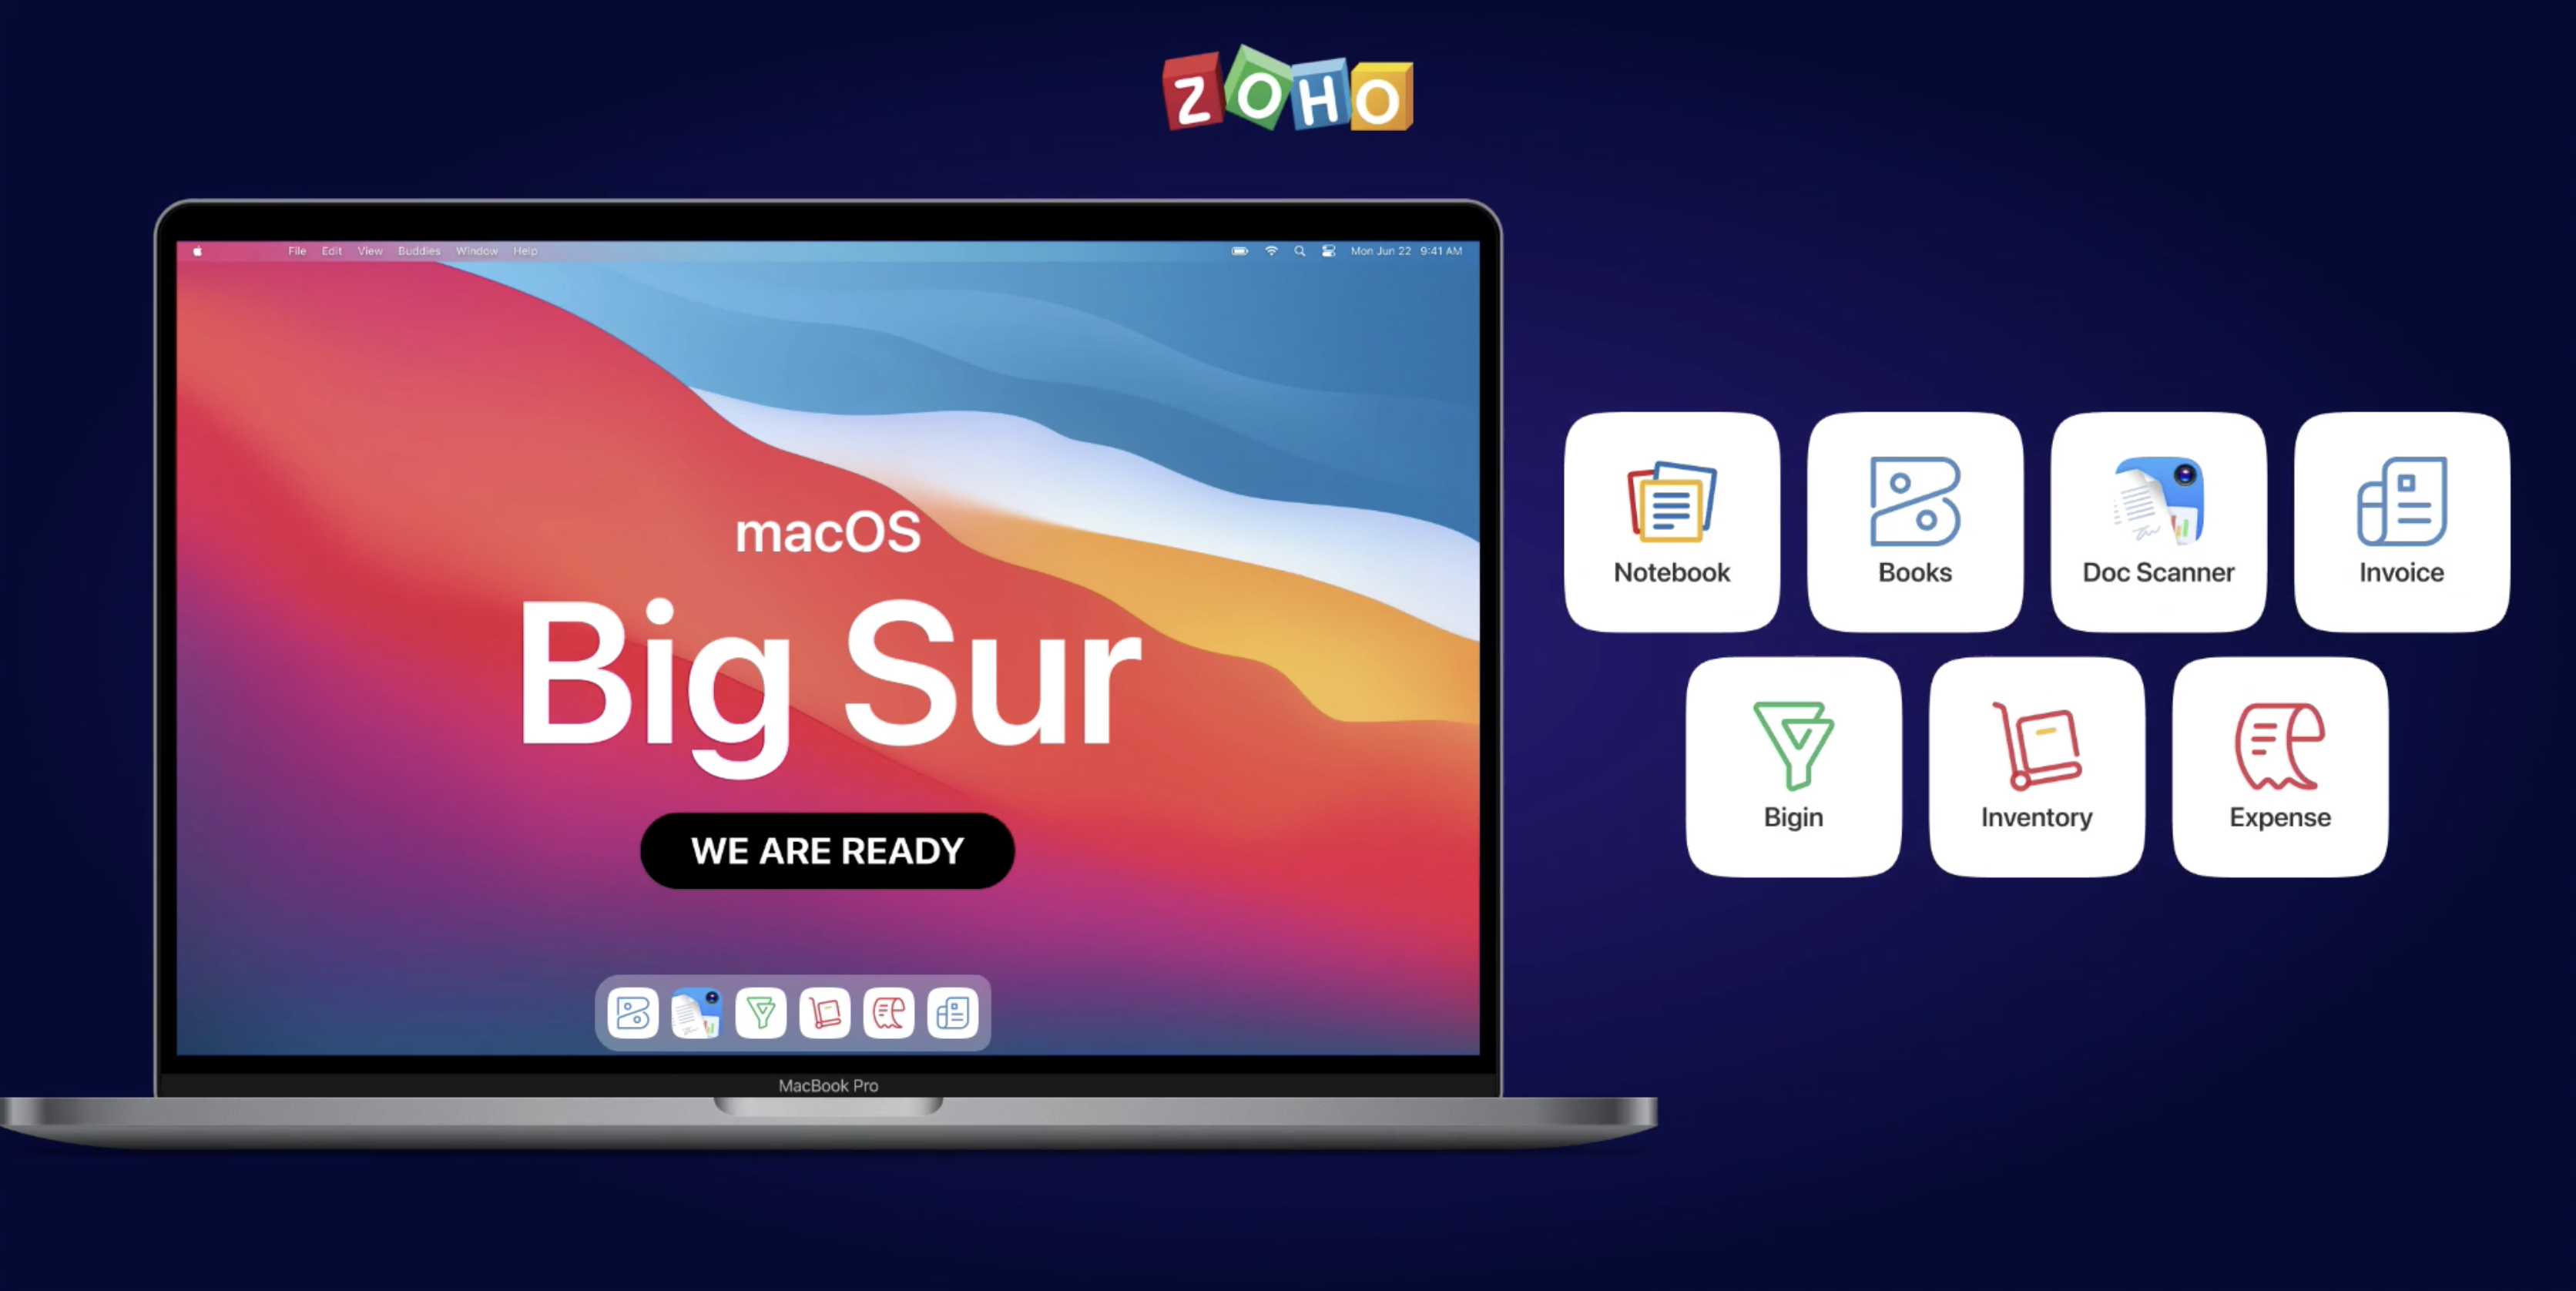 Bringing the macOS Big Sur experience to your Zoho apps